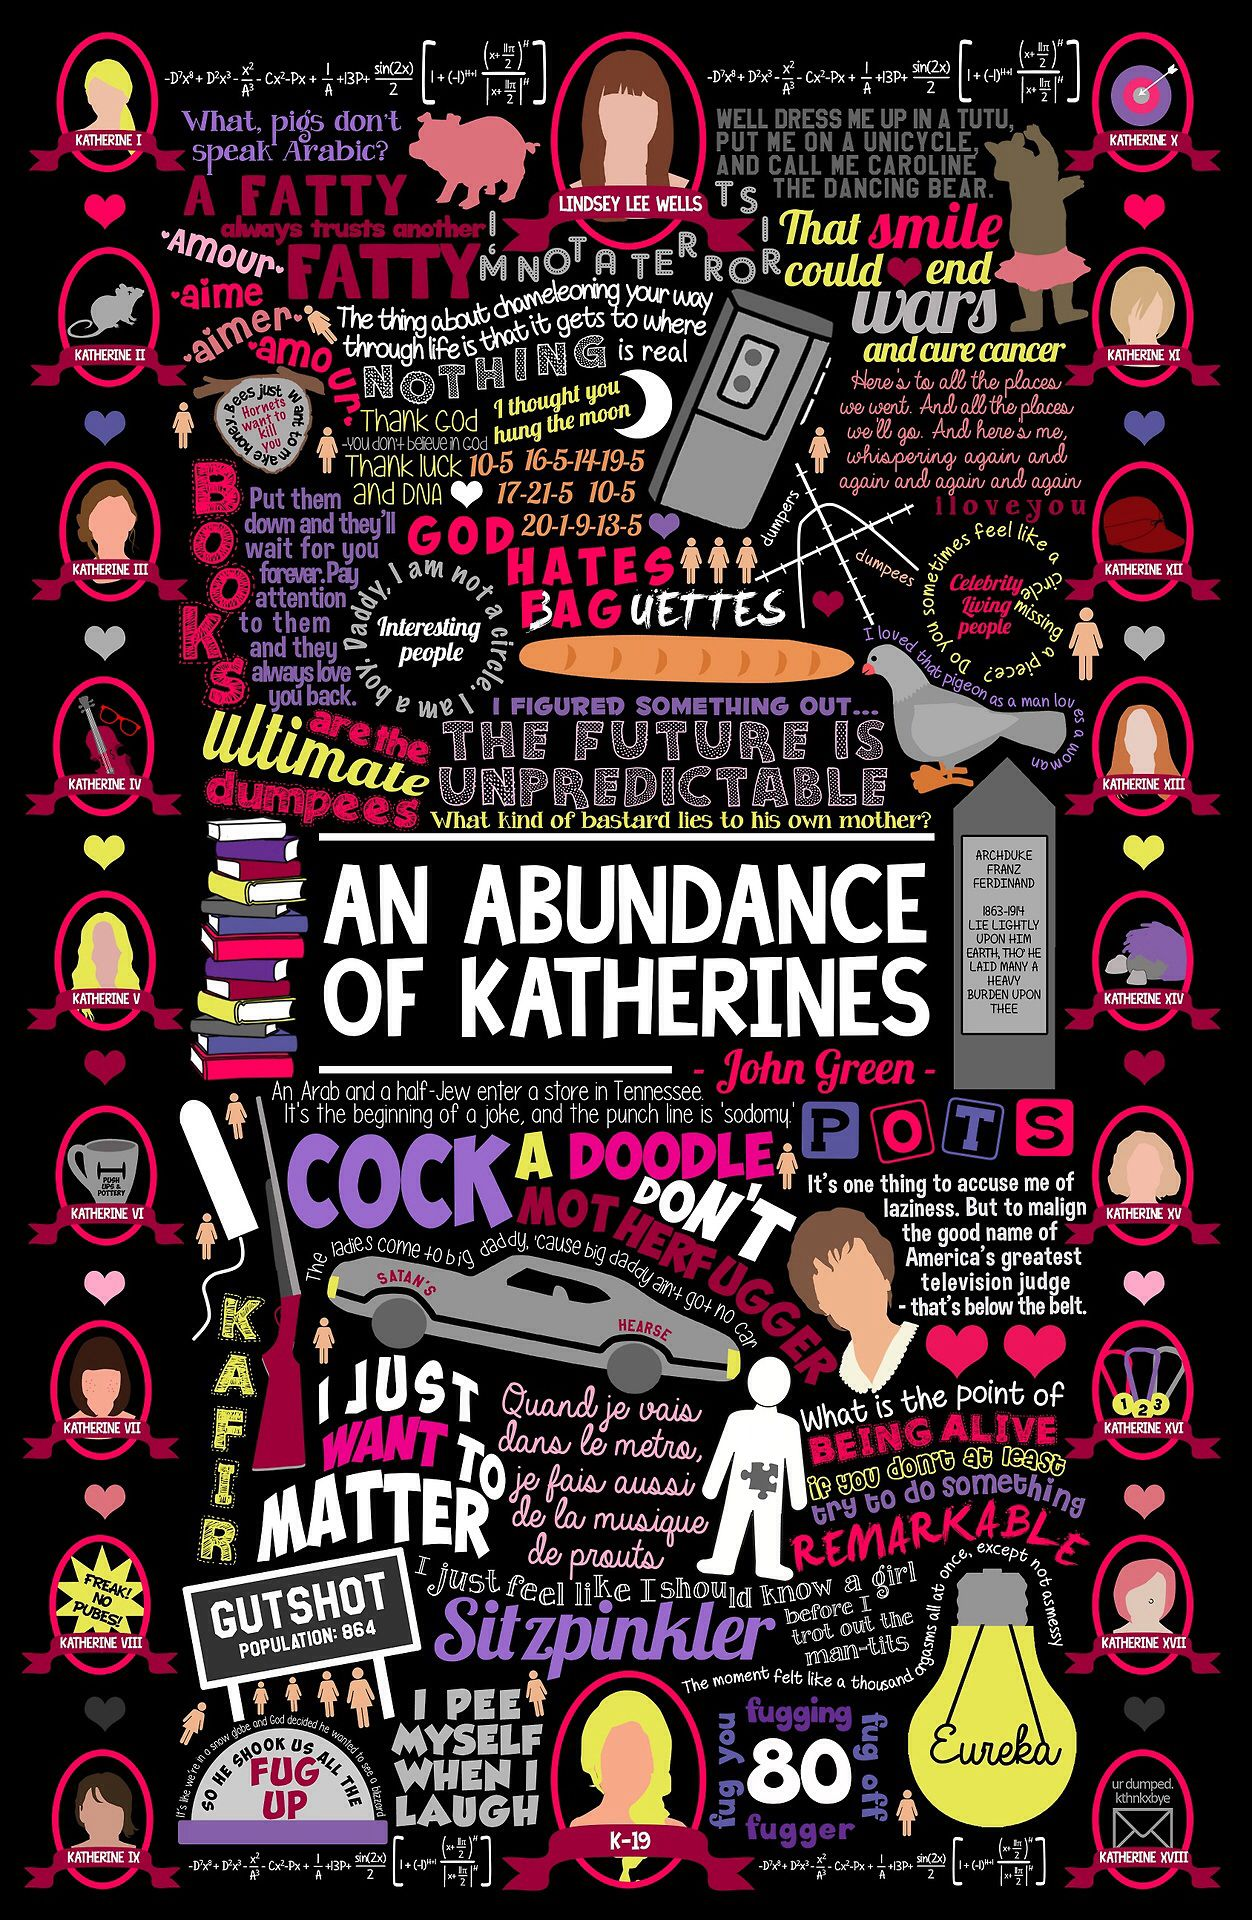 an analysis of an abundance of katherines by john green Book review: an abundance of katherines by john green  to read books on technical analysis of whatever it is the book is supposed to analyze in the .